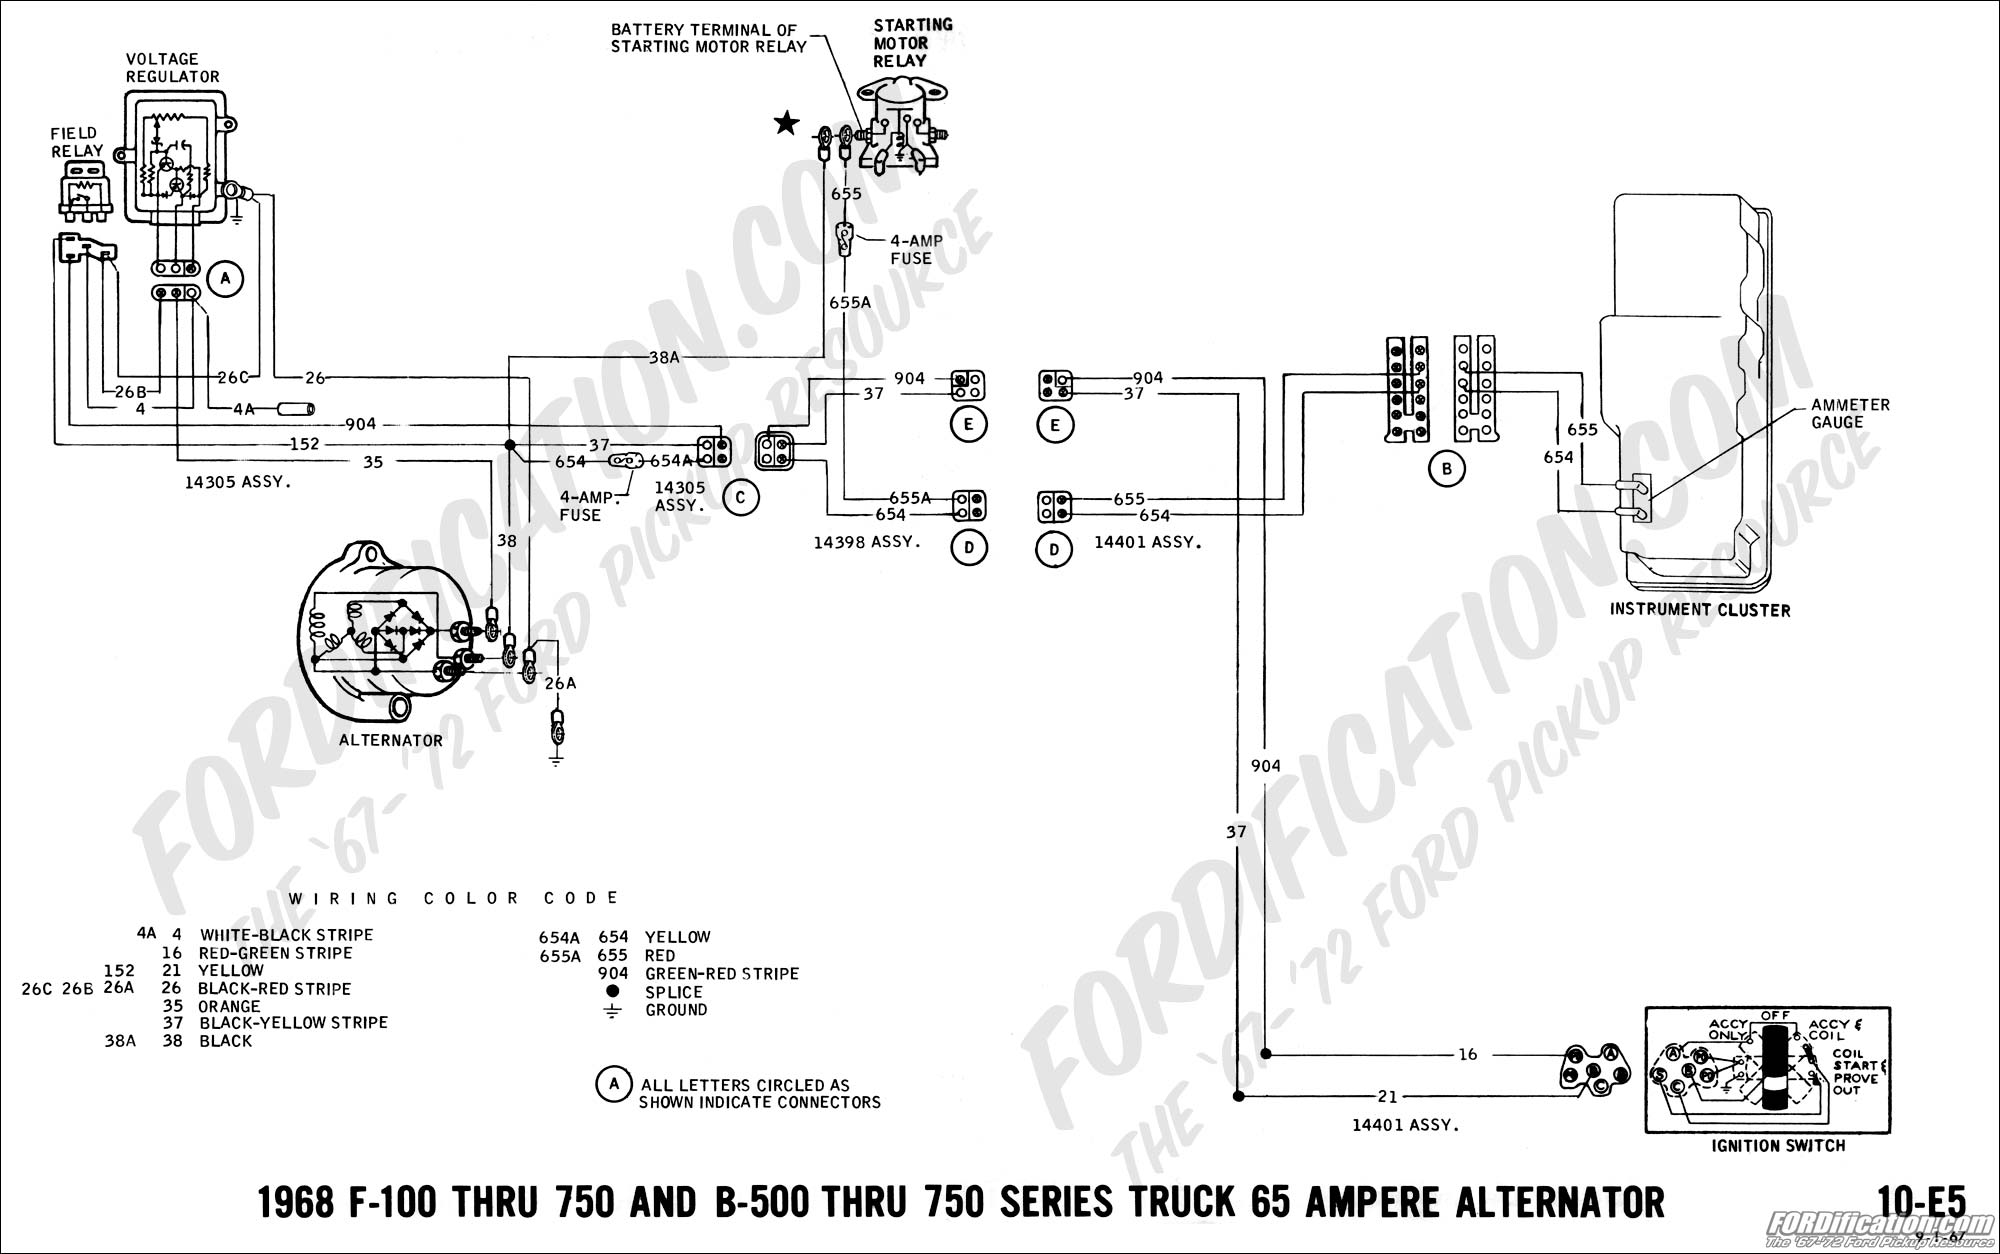 68 07 ford truck technical drawings and schematics section h wiring 1971 ford f250 wiring diagram at mifinder.co